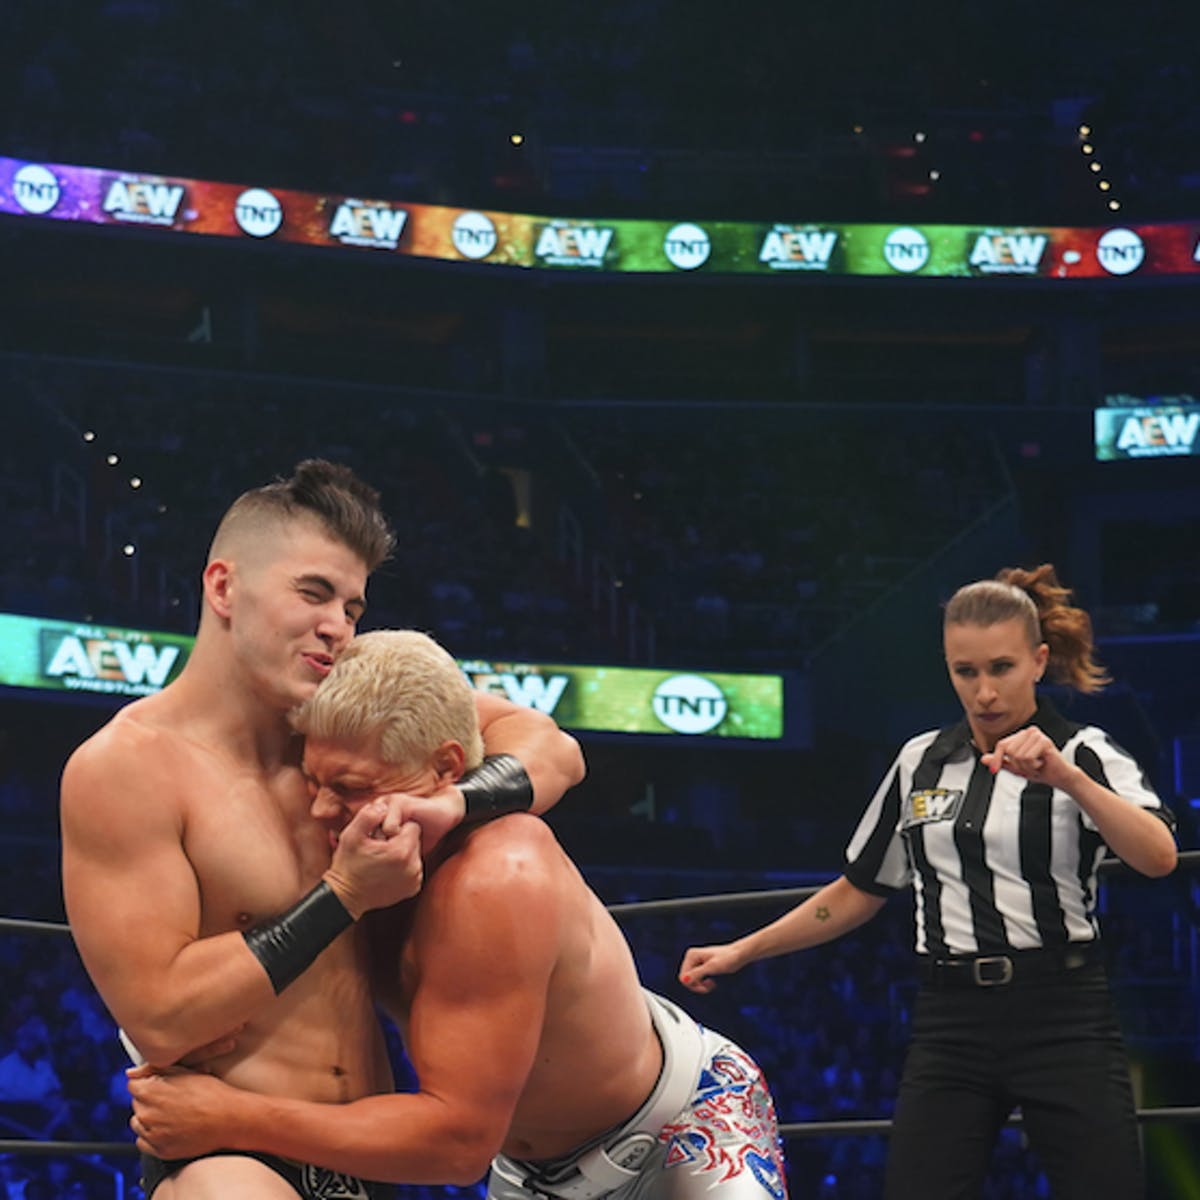 AEW is disrupting the wrestling world, one suplex at a time